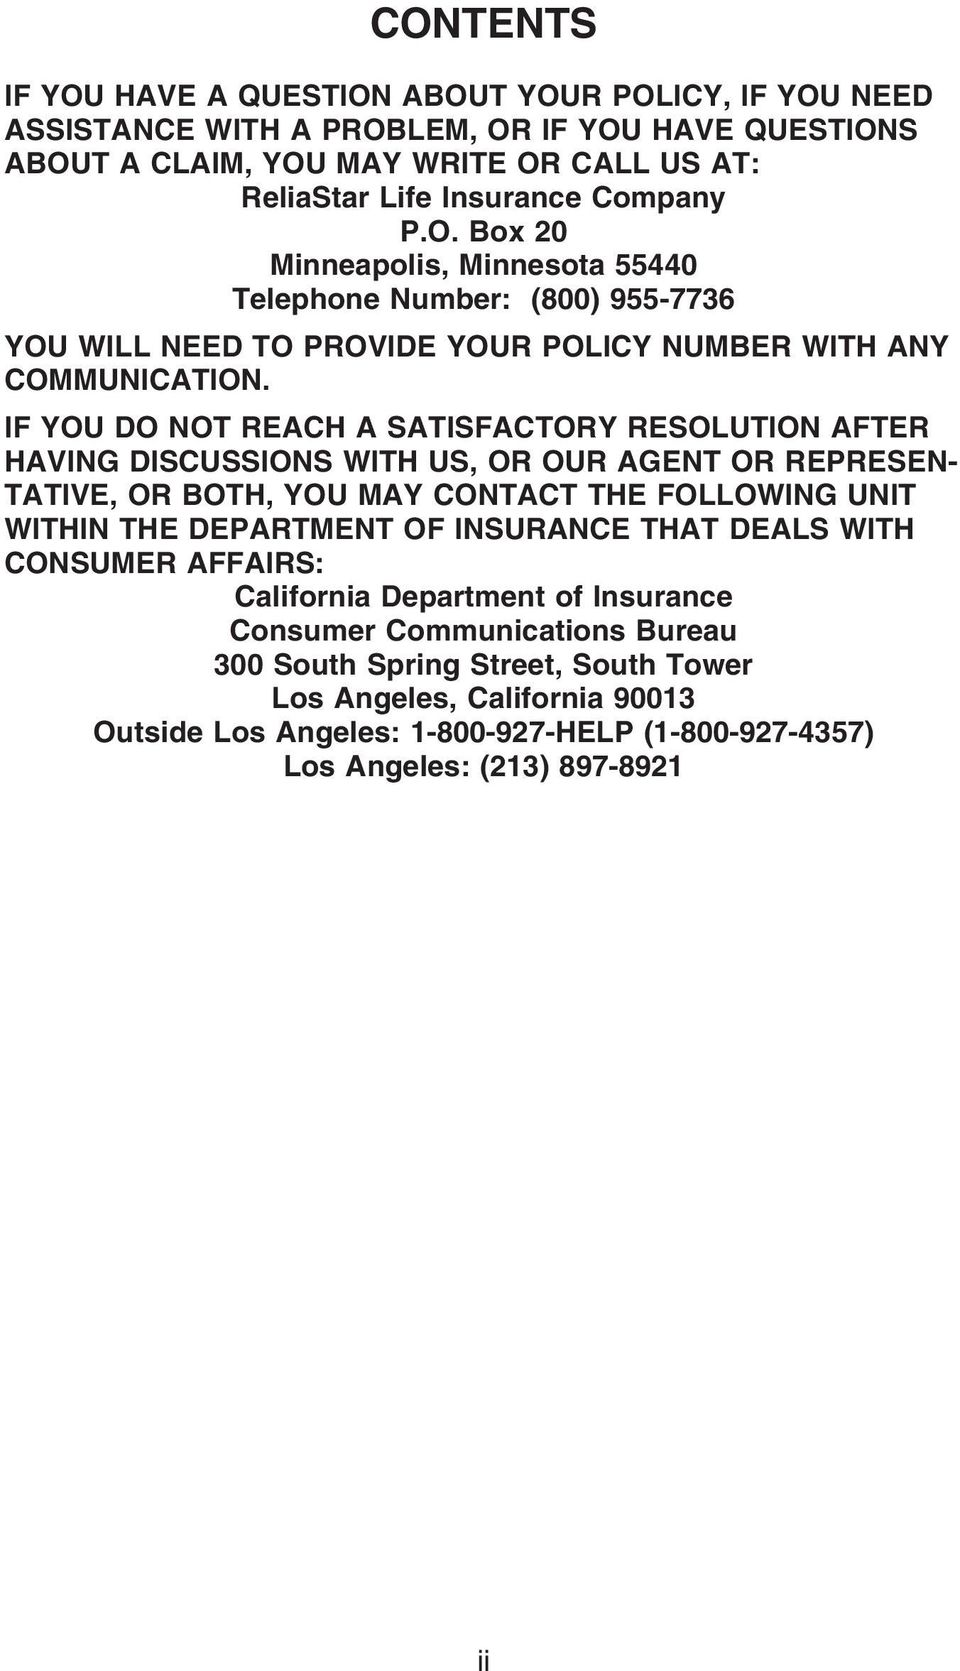 IF YOU DO NOT REACH A SATISFACTORY RESOLUTION AFTER HAVING DISCUSSIONS WITH US, OR OUR AGENT OR REPRESEN- TATIVE, OR BOTH, YOU MAY CONTACT THE FOLLOWING UNIT WITHIN THE DEPARTMENT OF INSURANCE